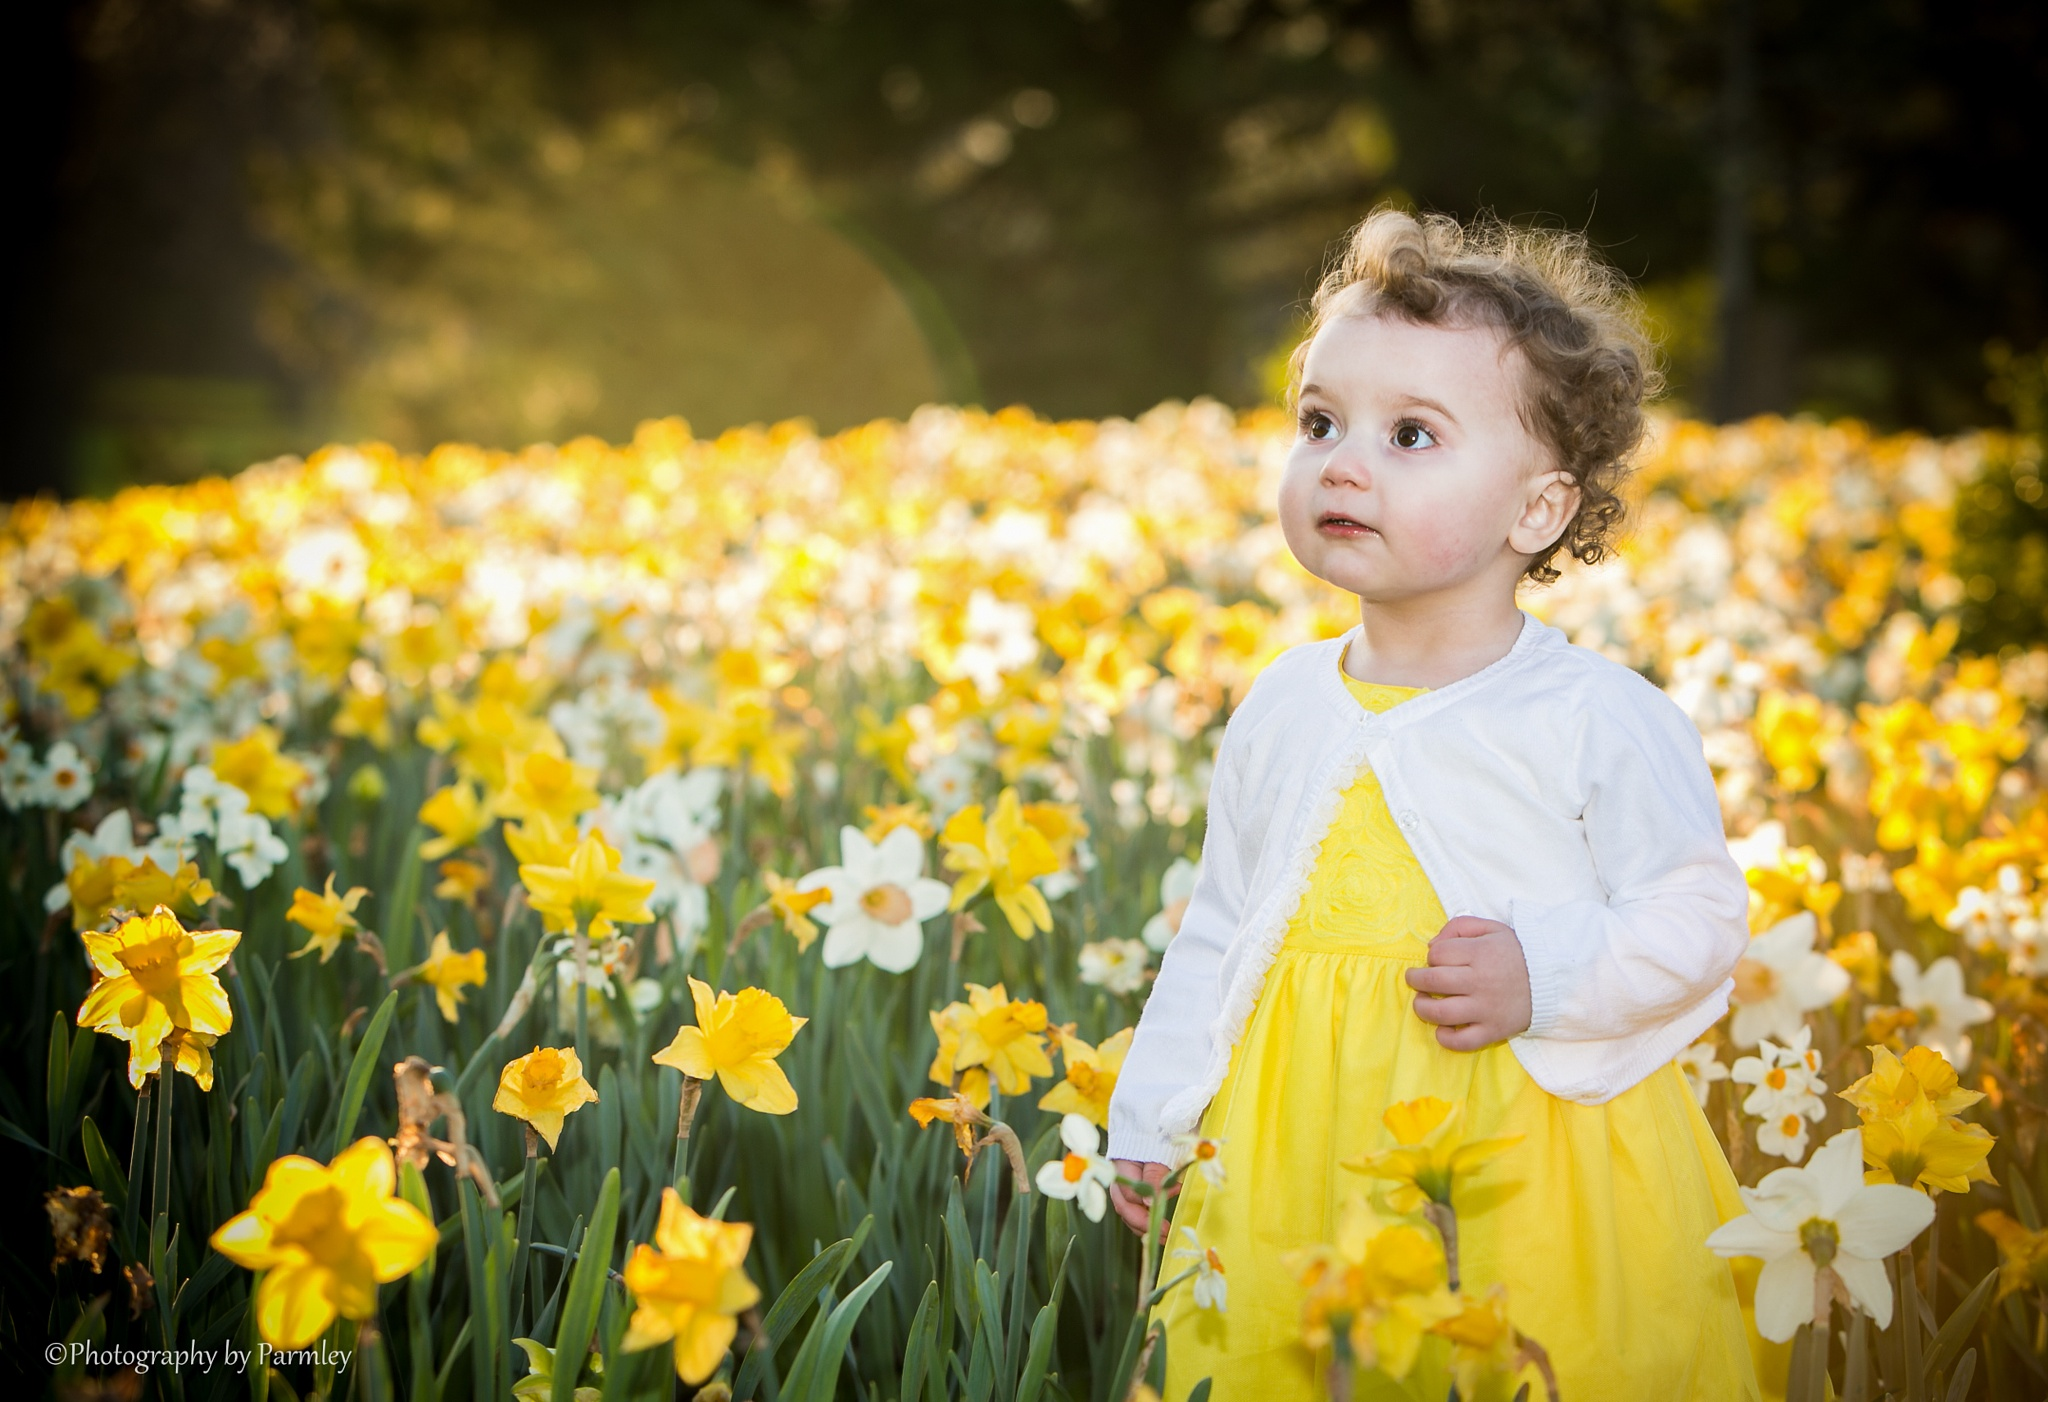 In the Flowers by JP Parmley